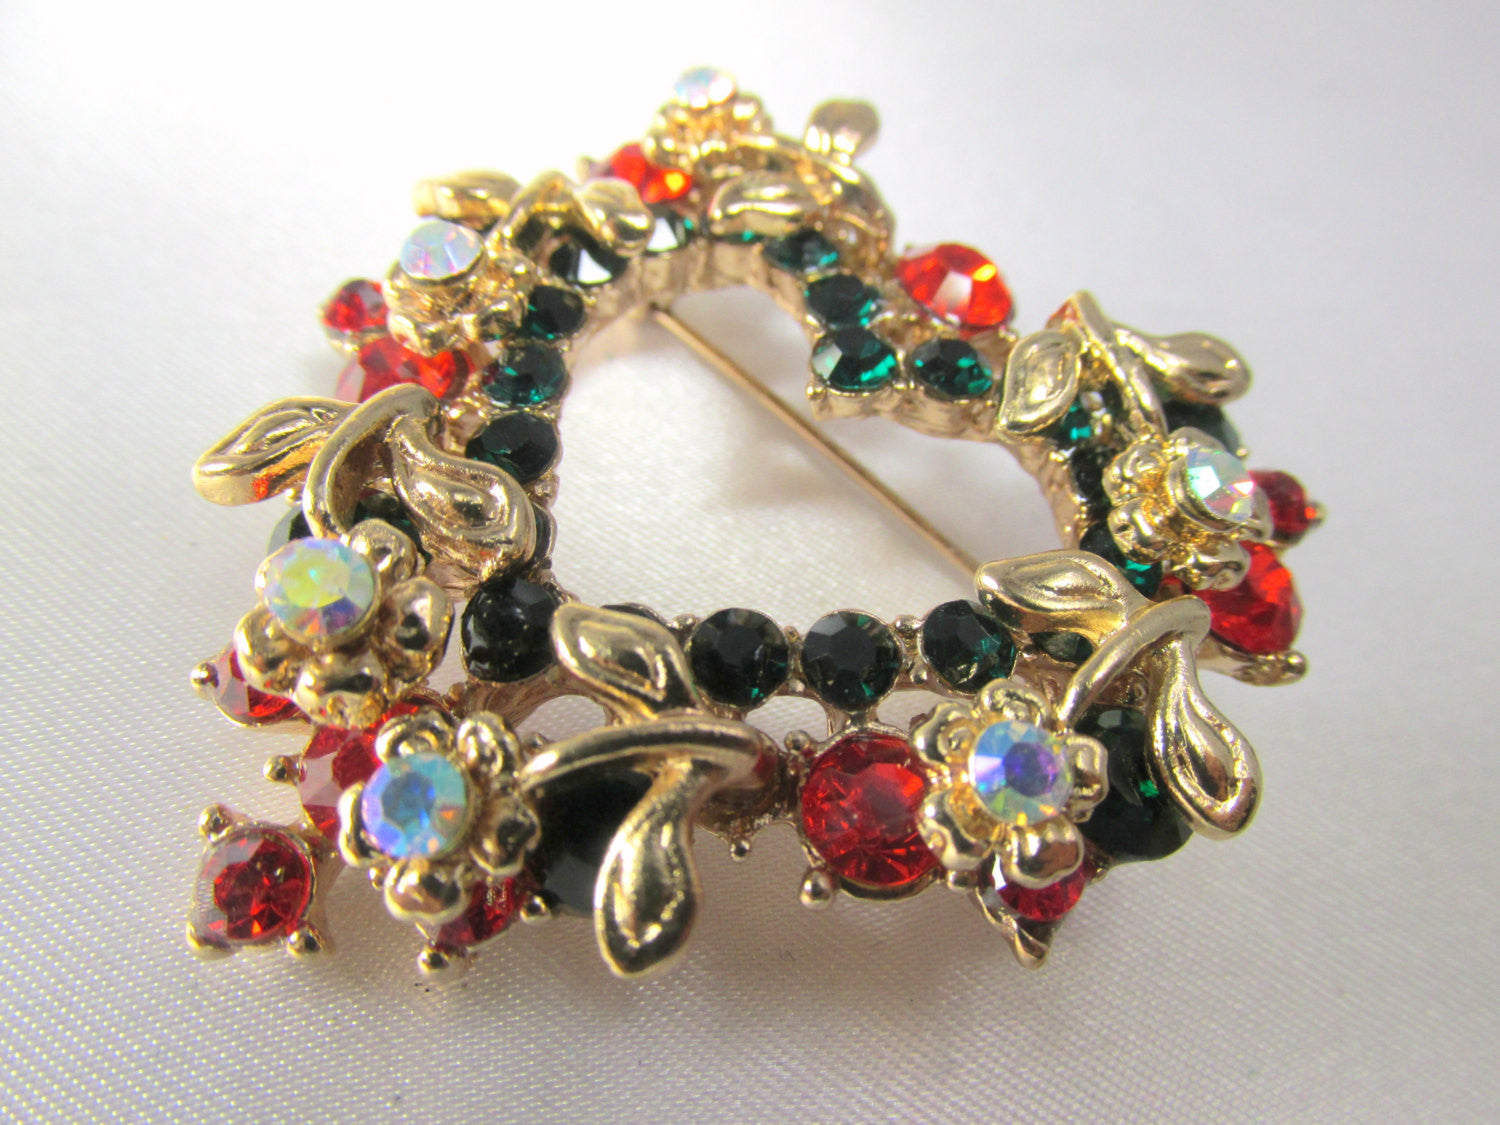 Christmas Heart Wreath Brooch in Green, Red, Crystal AB and Gold - Odyssey Cache - 4